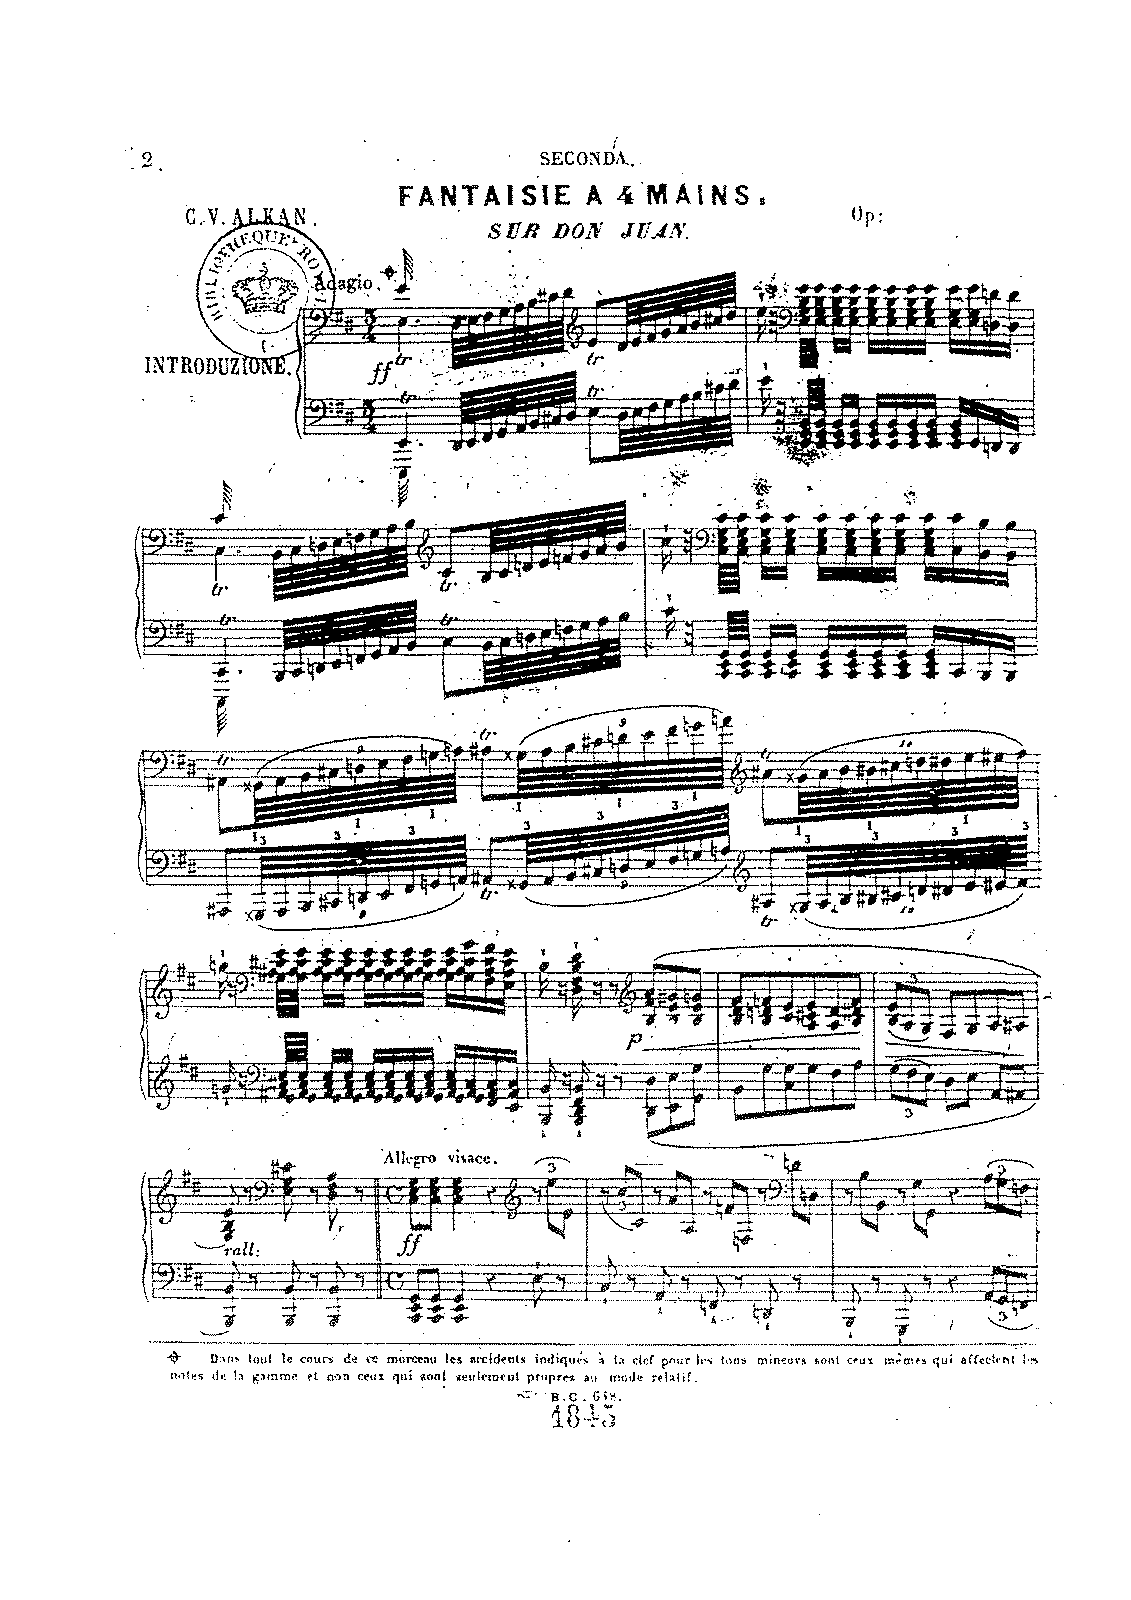 Mozart-Alkan Fantaisie sur Don Juan Op. 26 (arranged for 4 hands).pdf